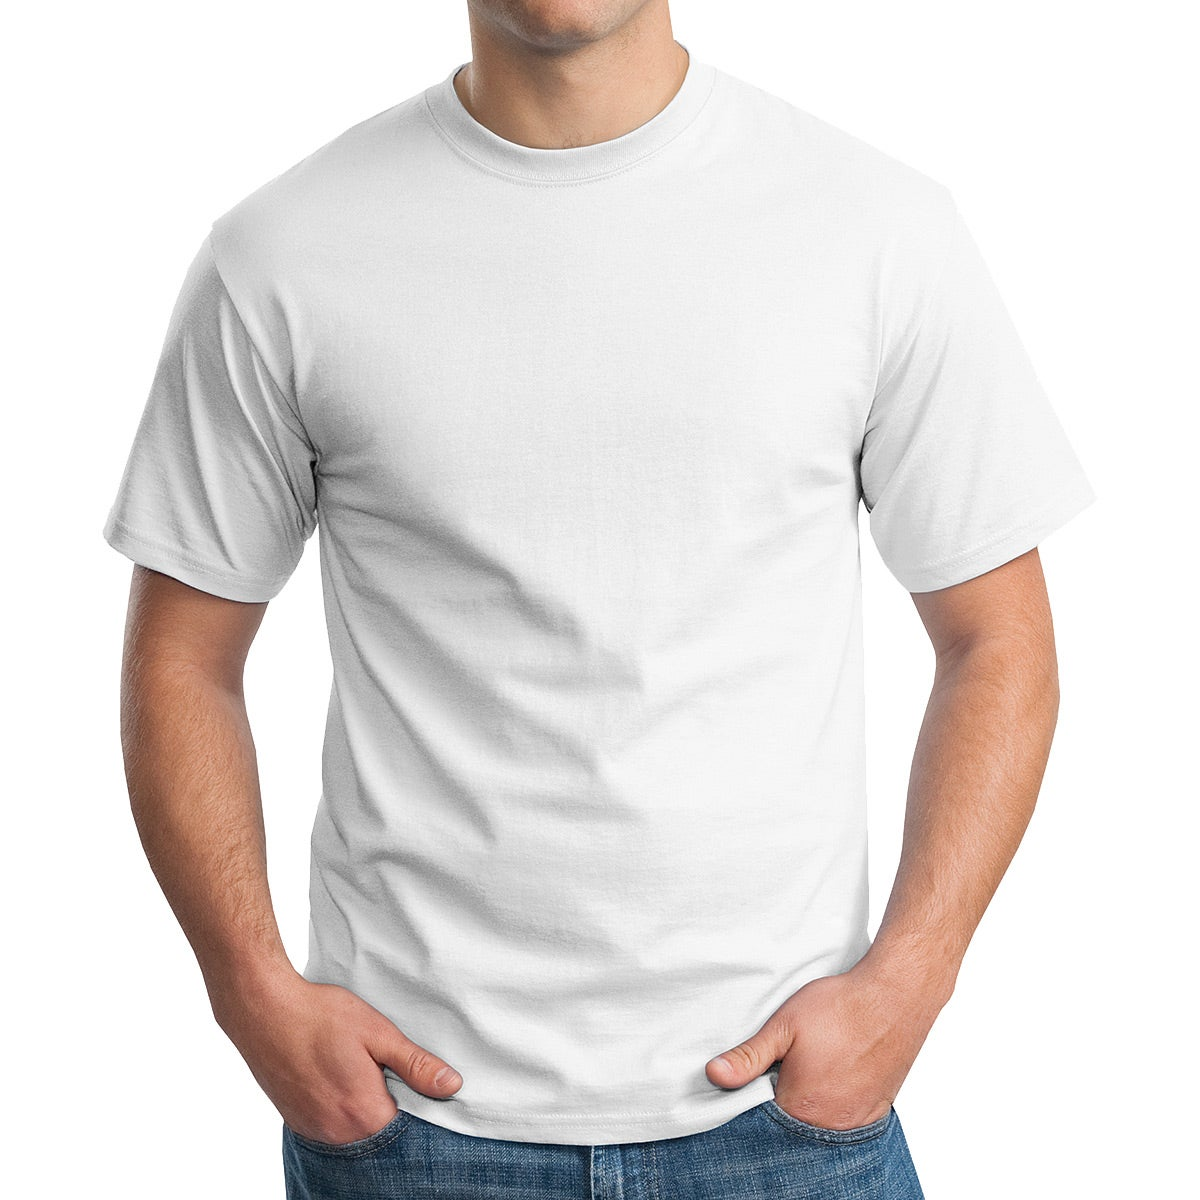 Hanes Tagless 100% Cotton T-Shirt (White)